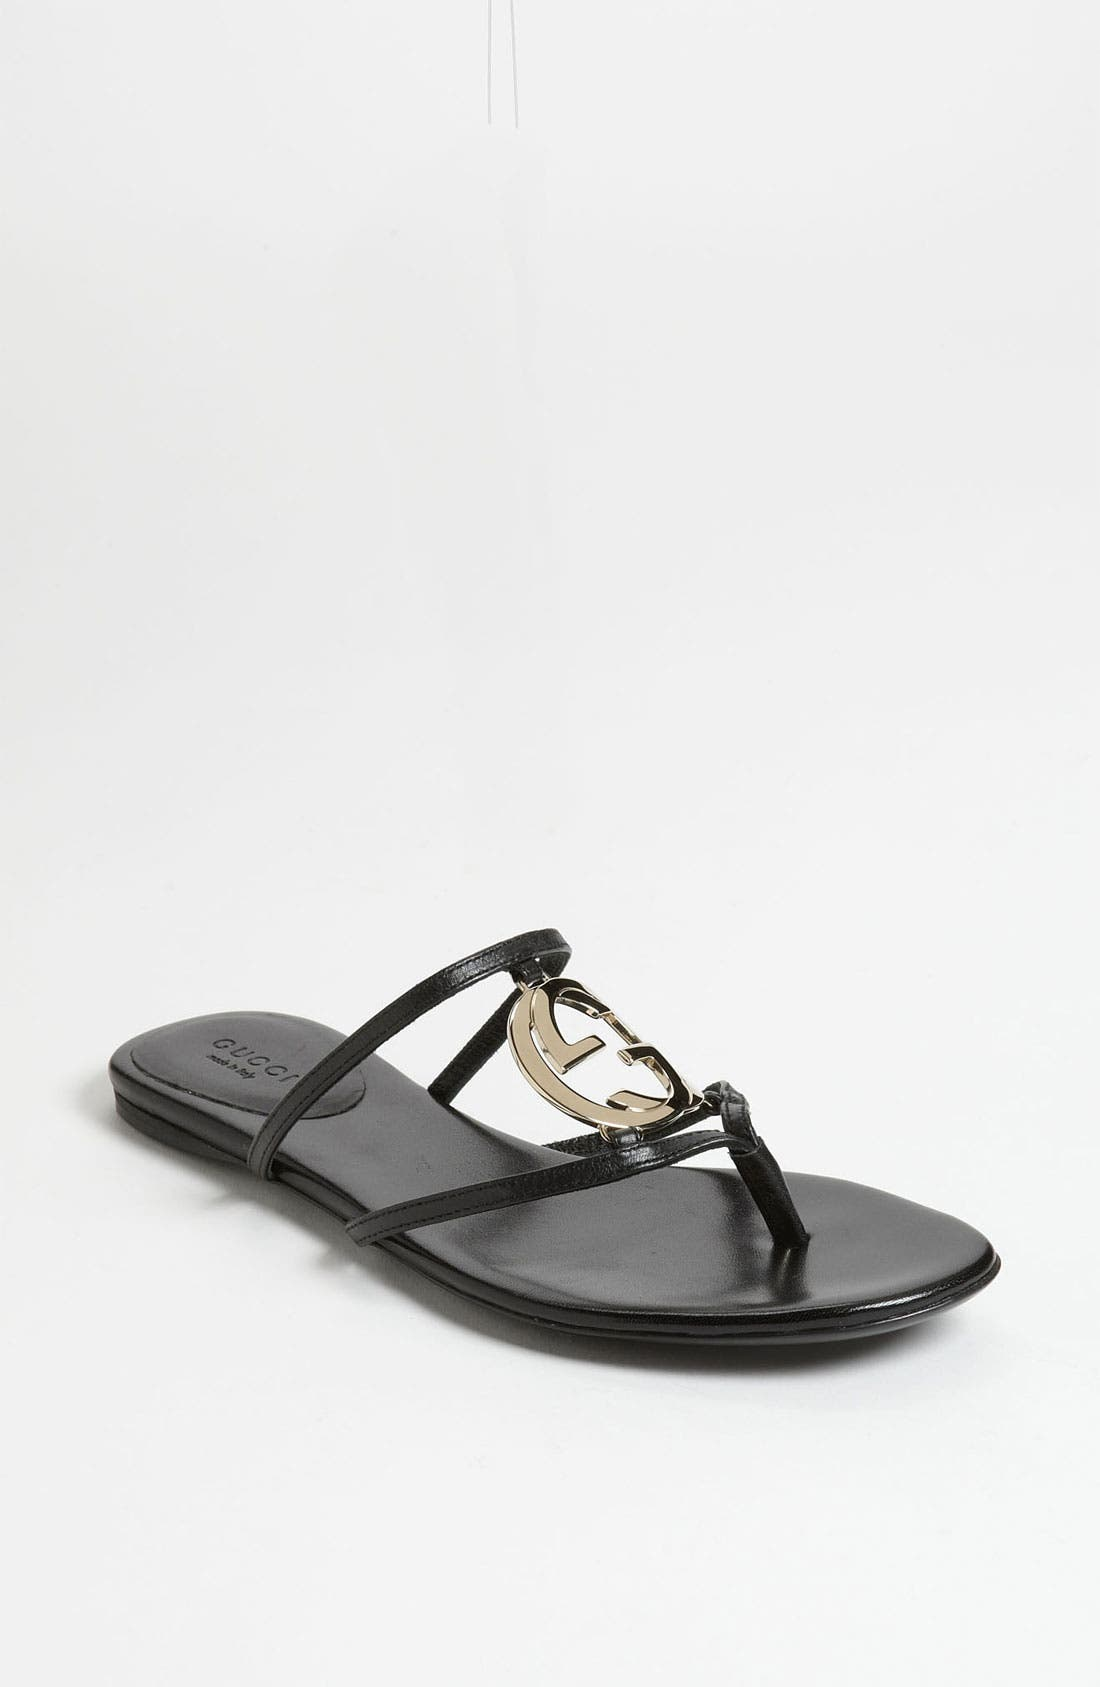 Alternate Image 1 Selected - Gucci 'GG' Logo Sandal